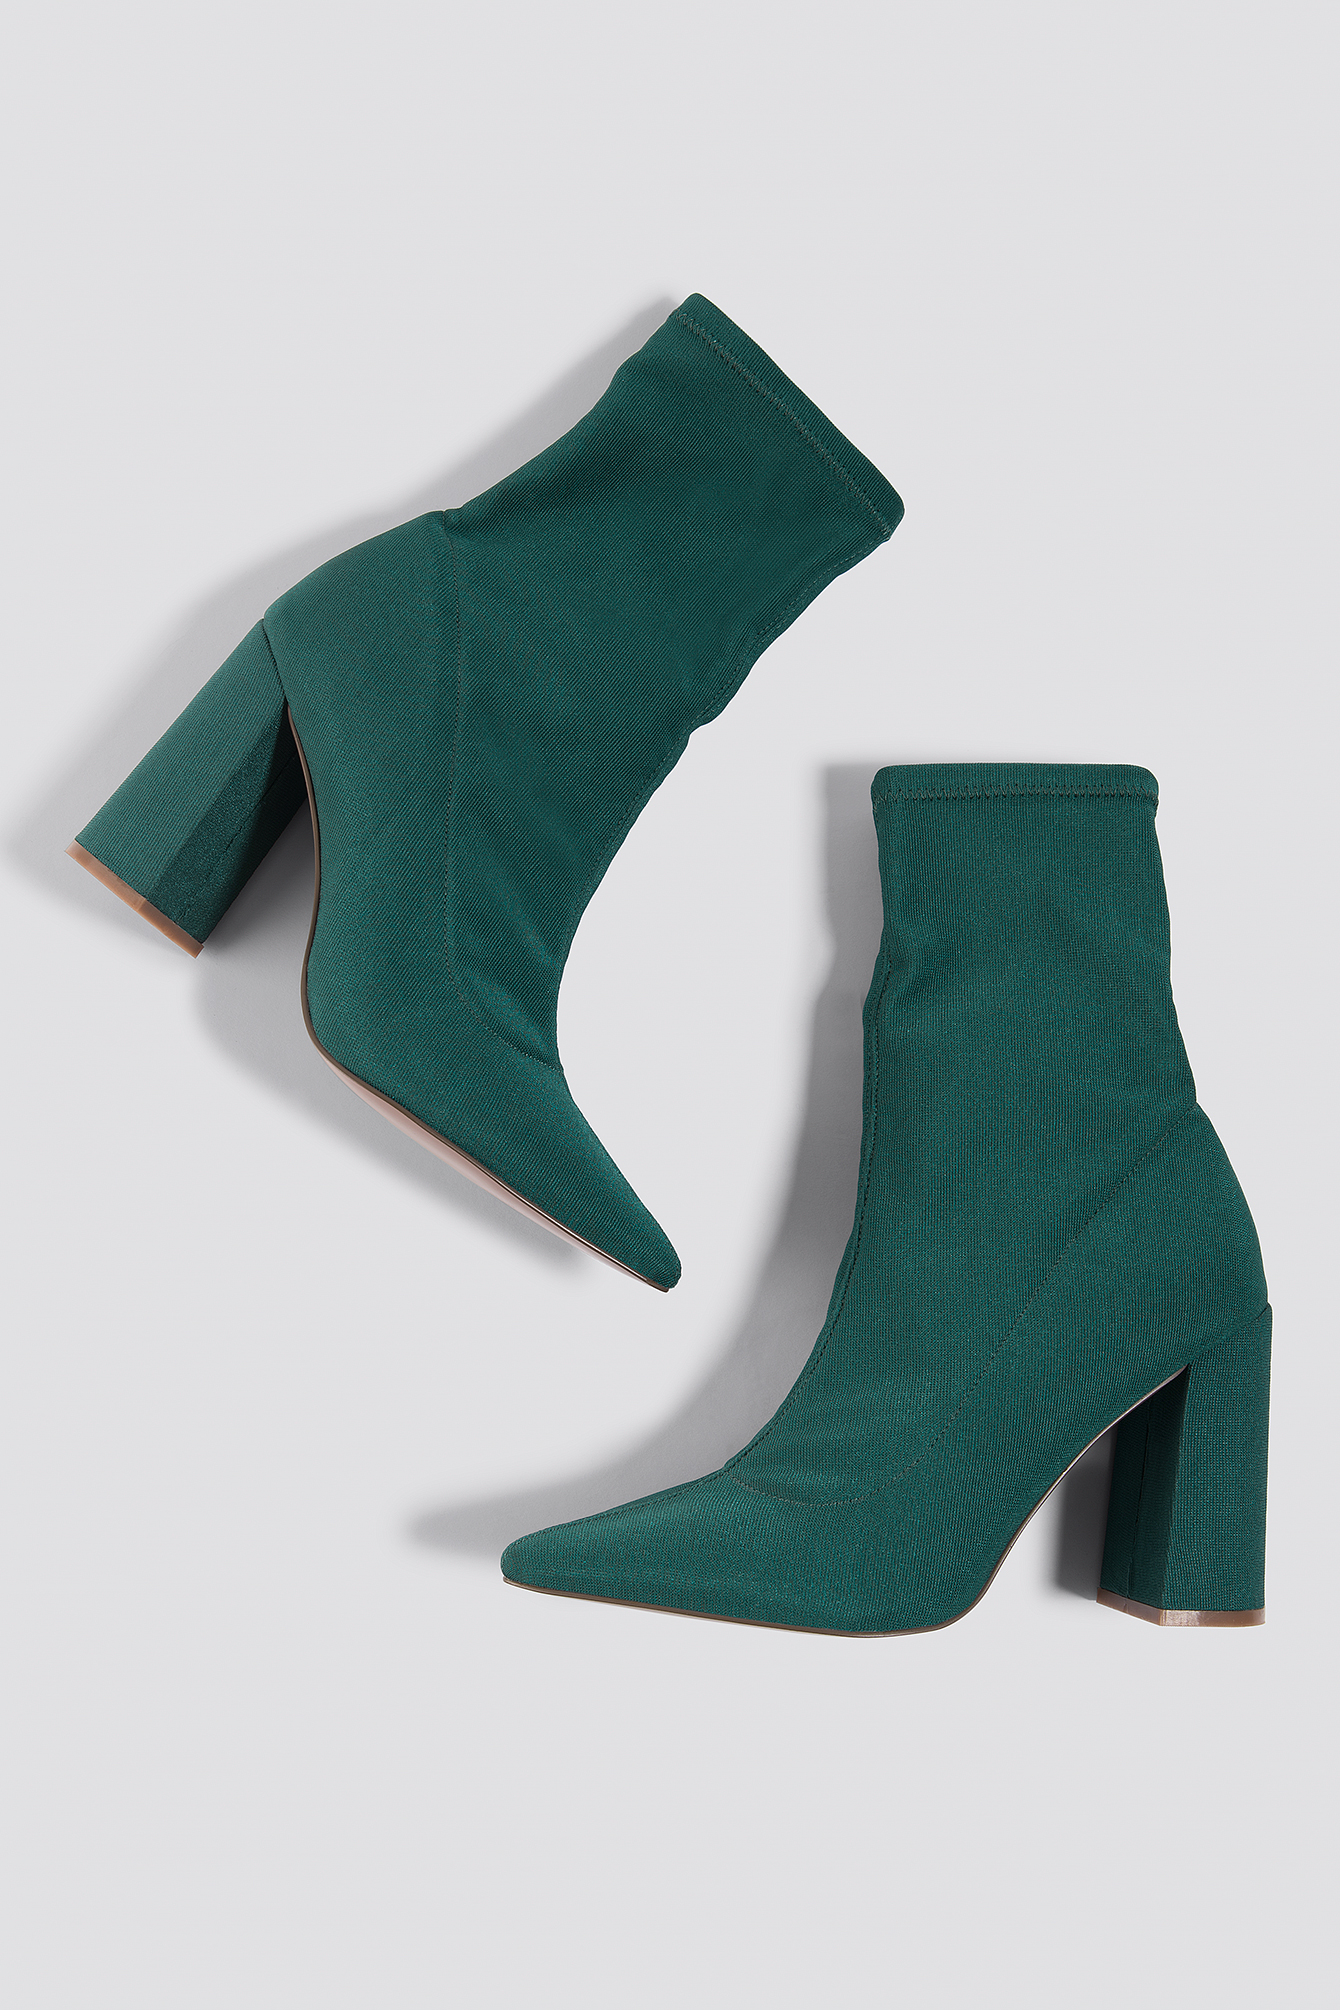 na-kd shoes -  Slanted Heel Sock Boots - Green